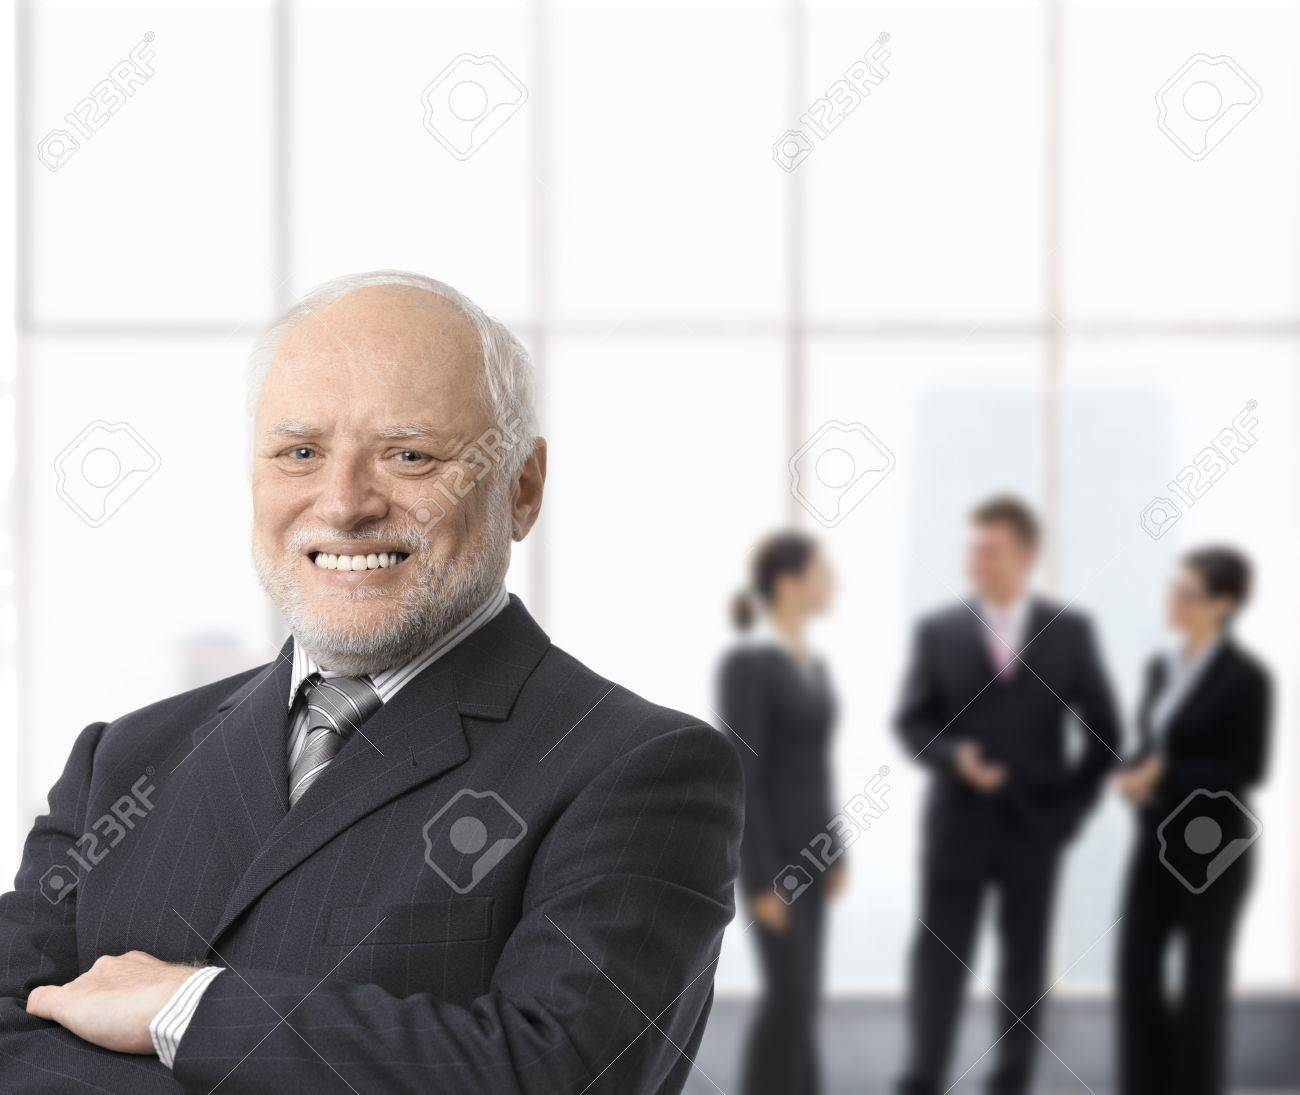 Portrait of smiling senior businessman standing with arms folded, businesspeople in background. Stock Photo - 8746945